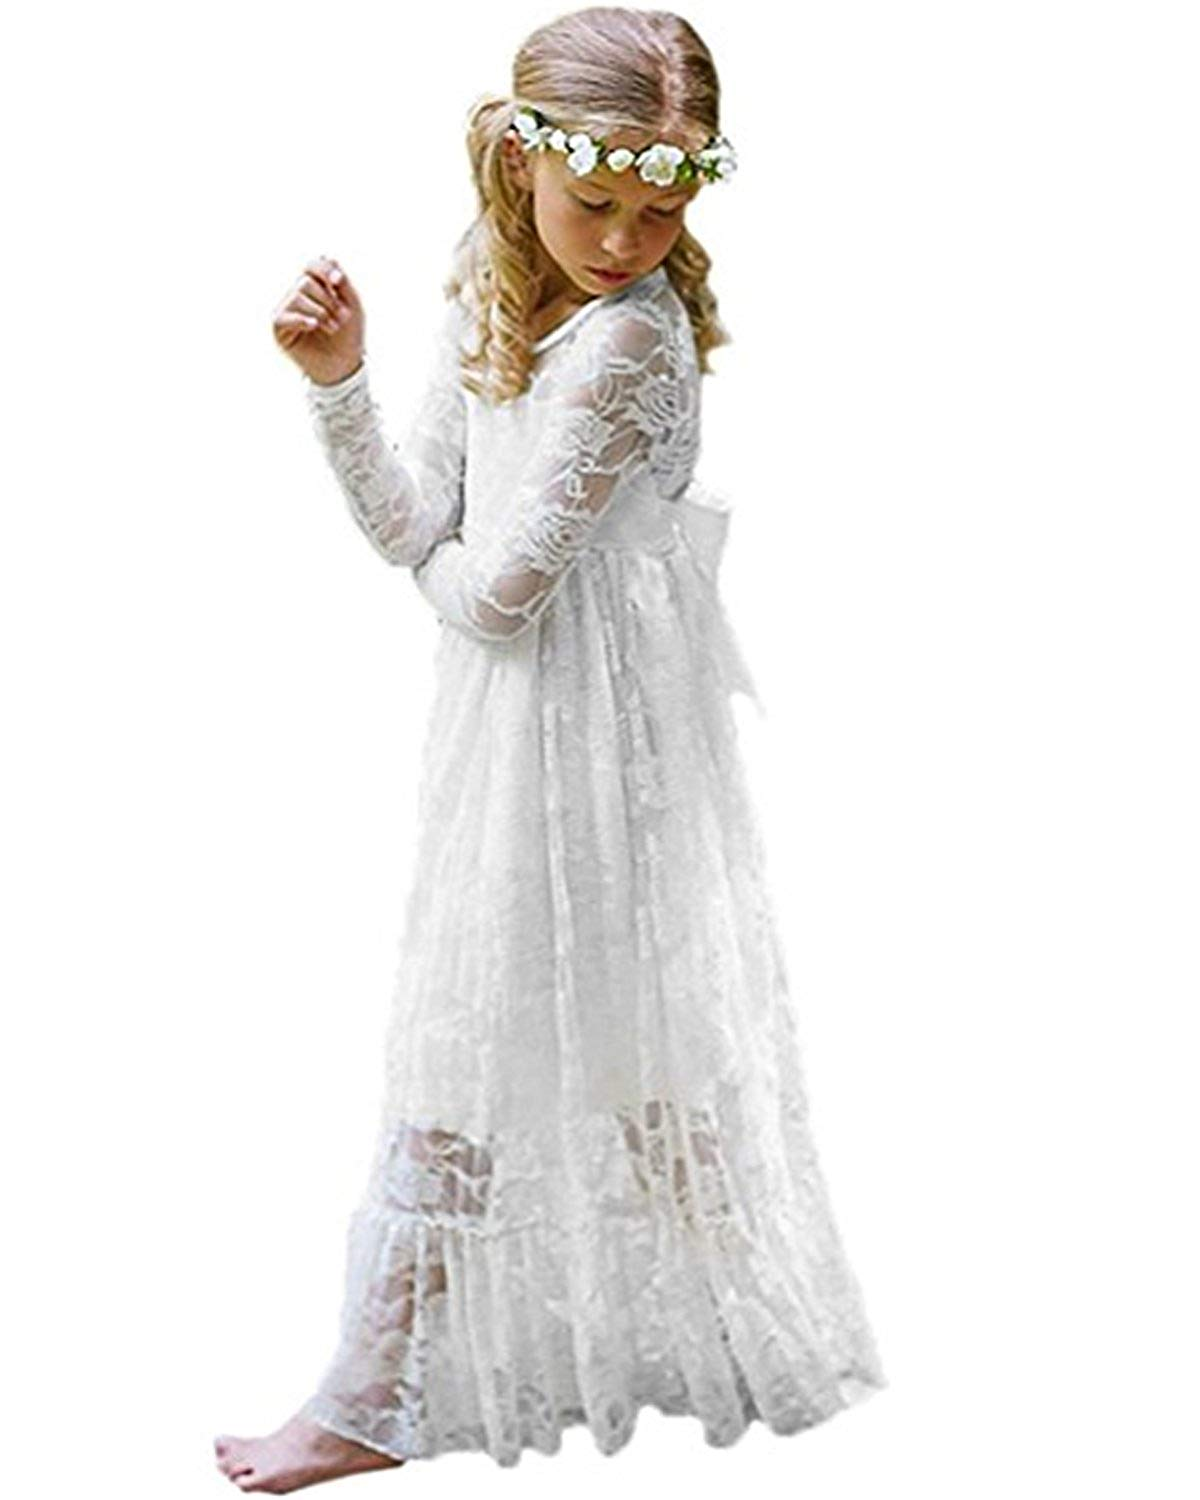 Kidsform Girl Lace Long Dress Fancy Boho White Long Sleeve Communion Wedding Party Baptism Dresses